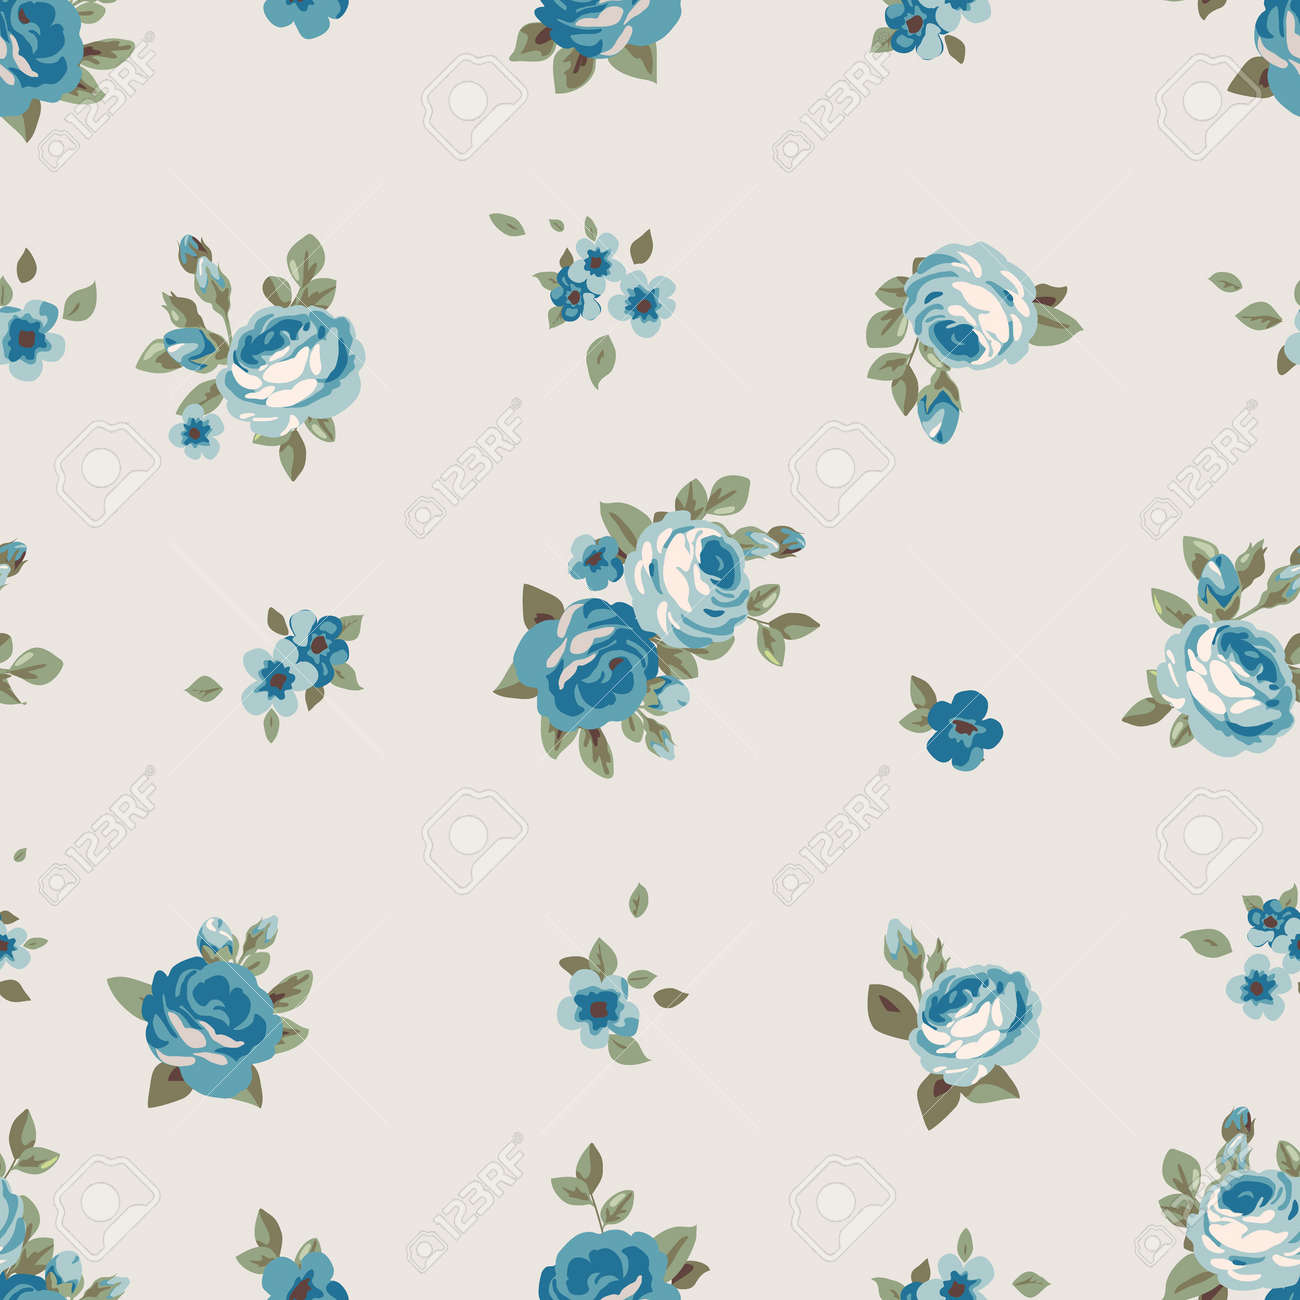 Seamless Pattern With Blue Flowers Vintage Seamless Floral Wallpaper Royalty Free Cliparts Vectors And Stock Illustration Image 59166450